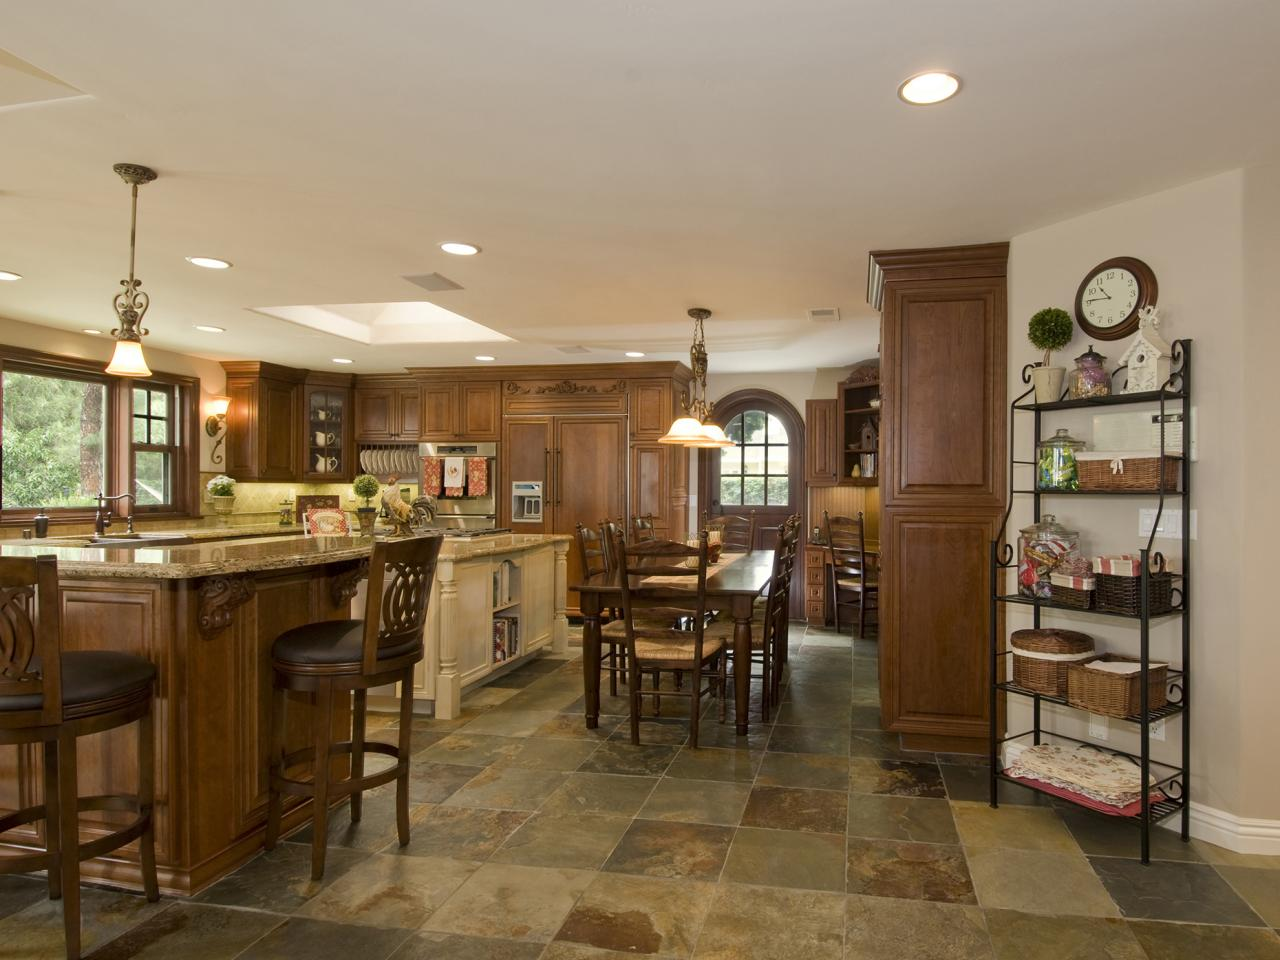 Kitchen floor buying guide hgtv practical ceramic tile flooring dailygadgetfo Image collections